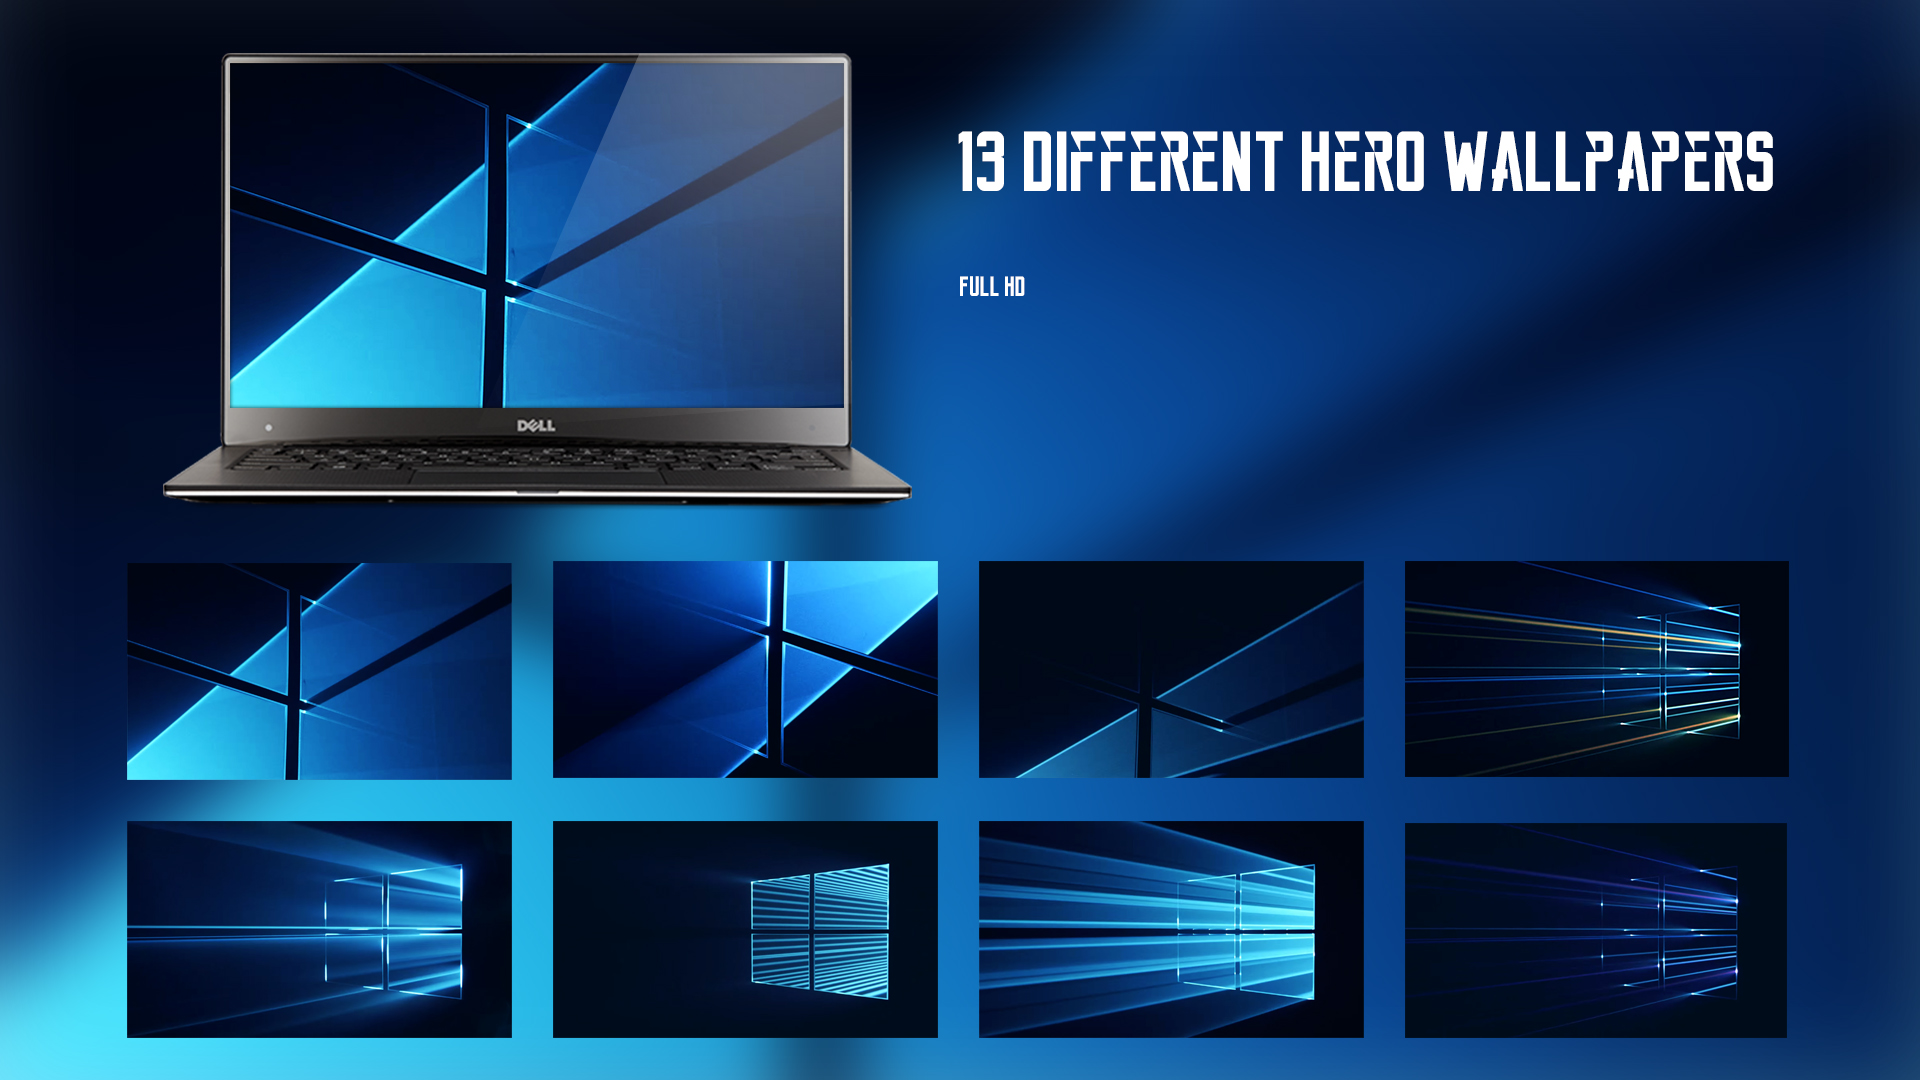 13 Different Amazing Hero Wallpapers Full Hd By Armend07 On Deviantart